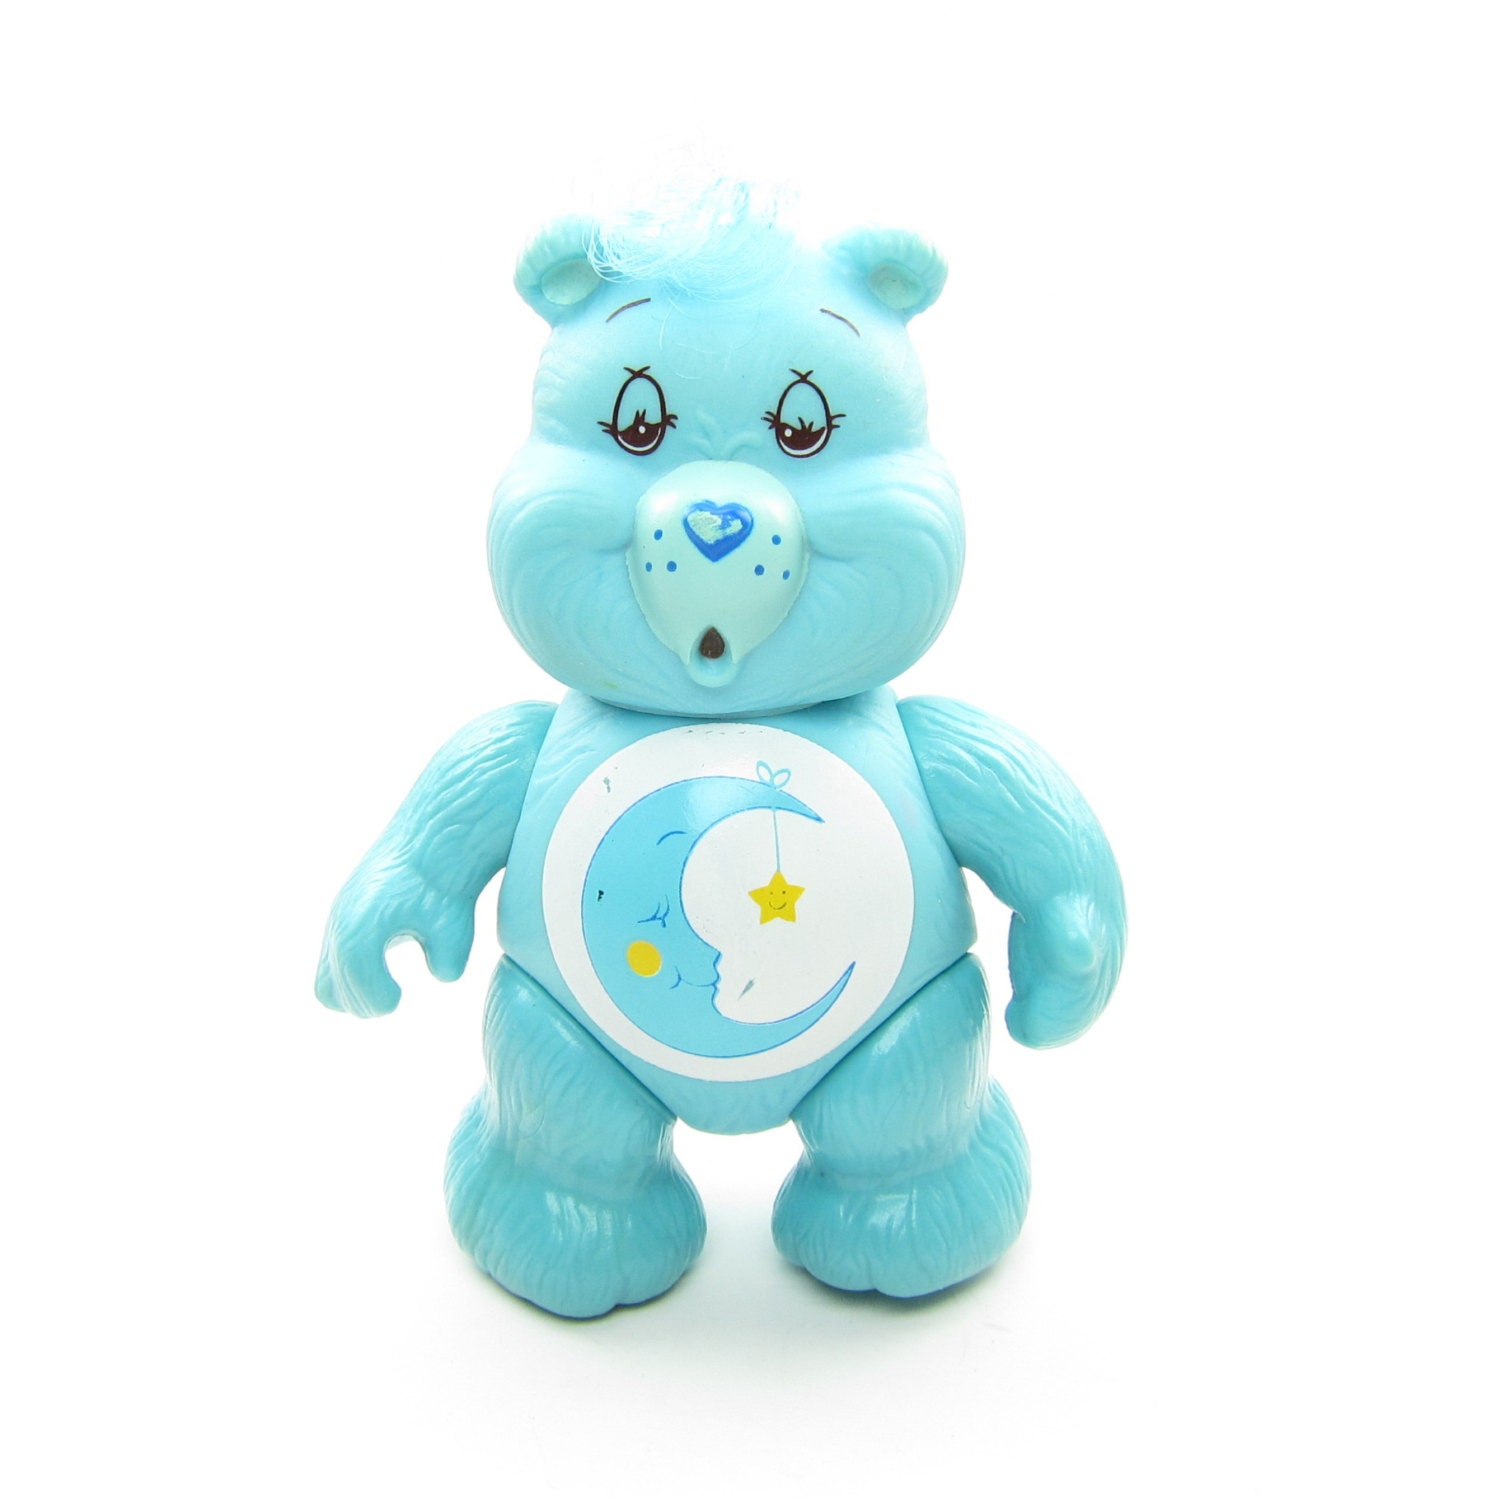 Toys For Bedtime : Bedtime bear care bears vintage poseable pvc toy figurine